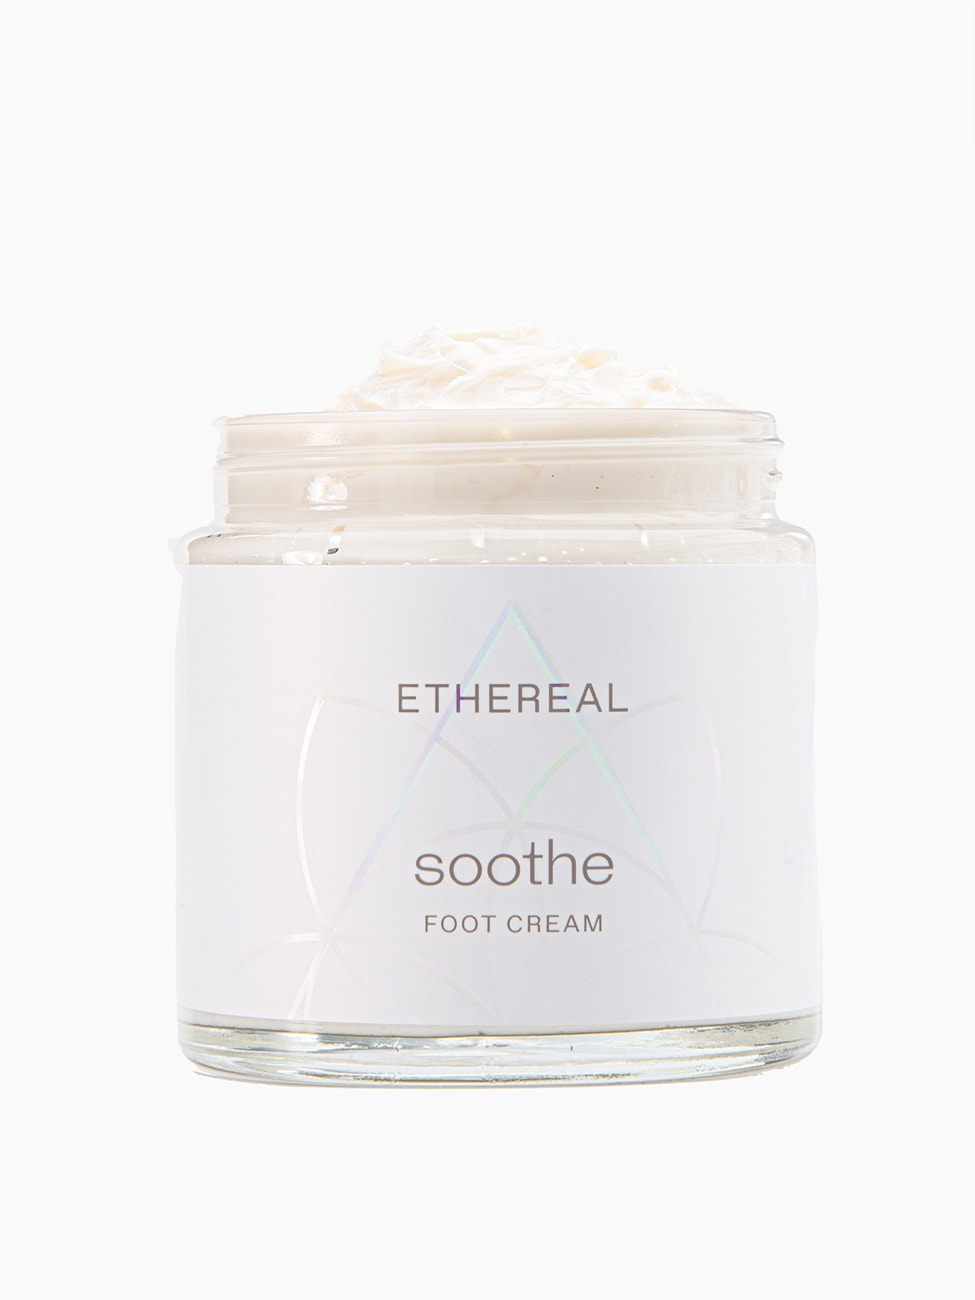 Soothe_Cream_Texture_Ethereal_Dermocosmetics_Skincare_Handmade_Greek_Products